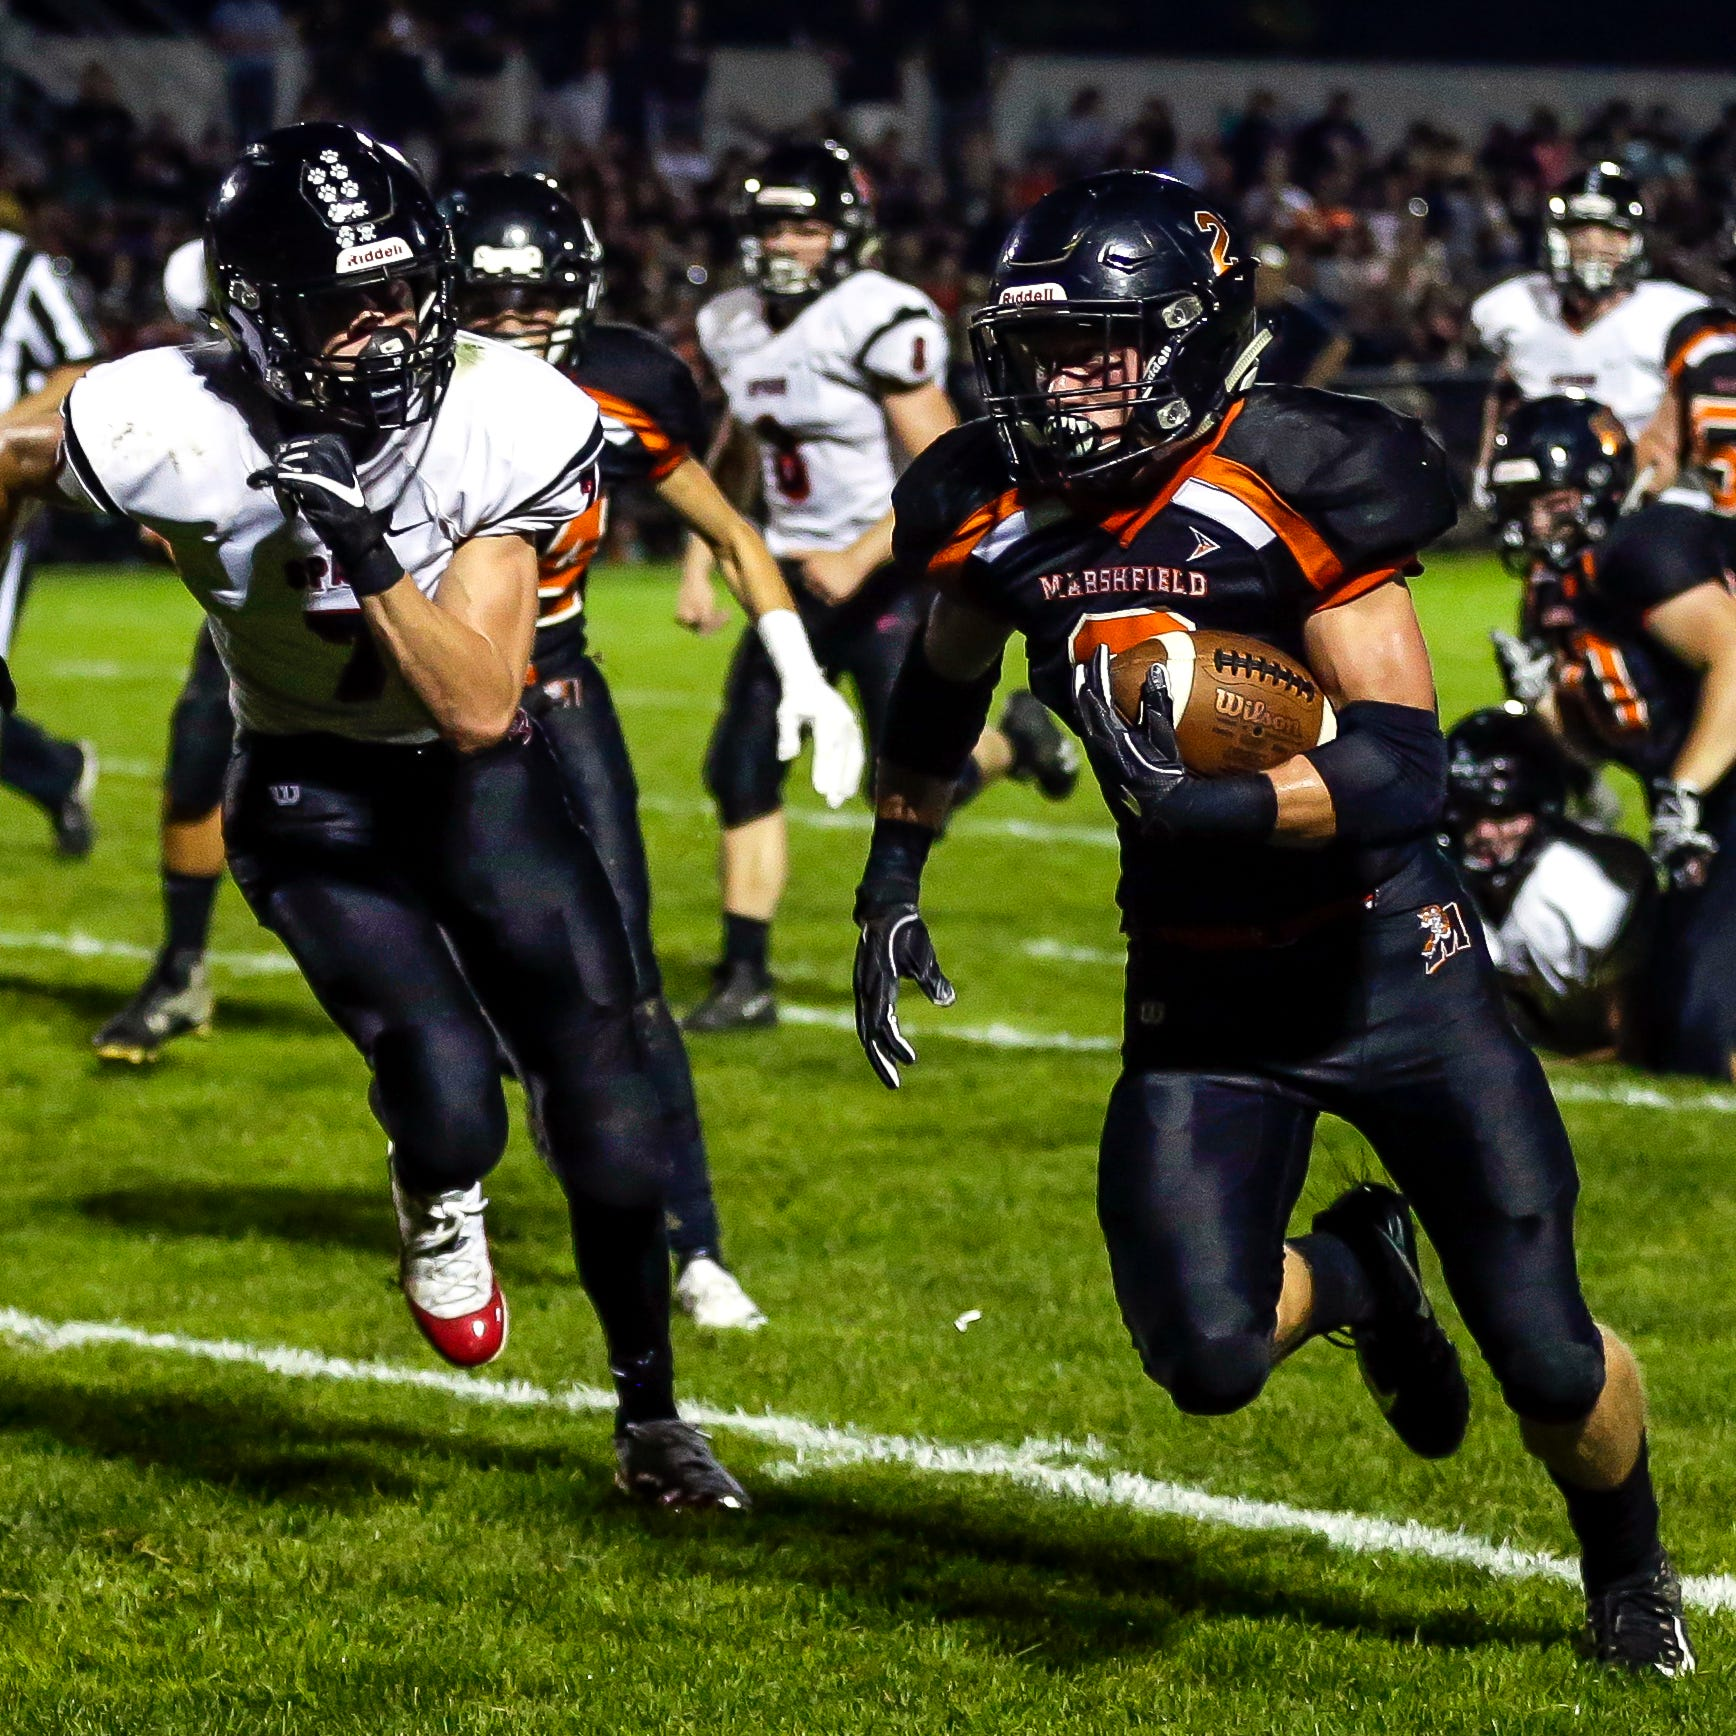 High school football: Marshfield stops SPASH just short of the end zone to stay undefeated